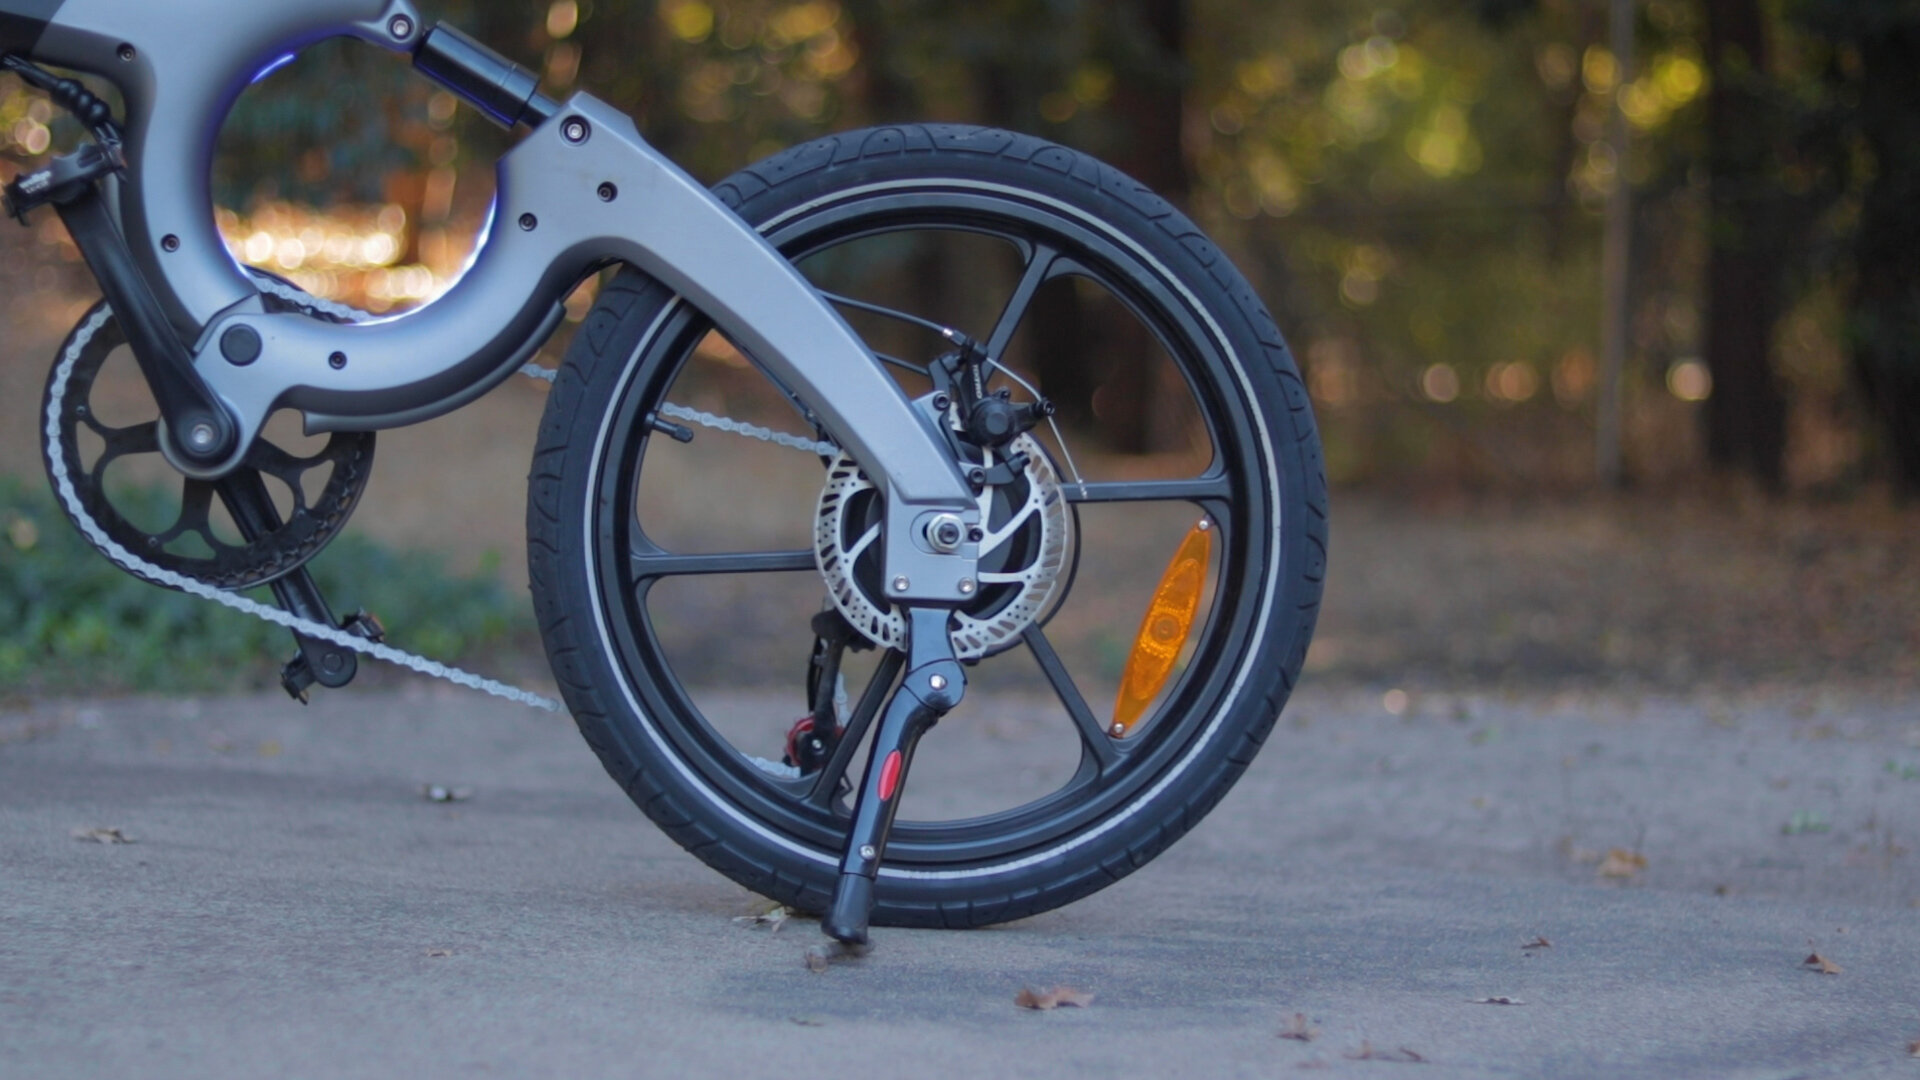 flowdot-electric-bike-review-2019-tektro-disc-brake-2.jpg